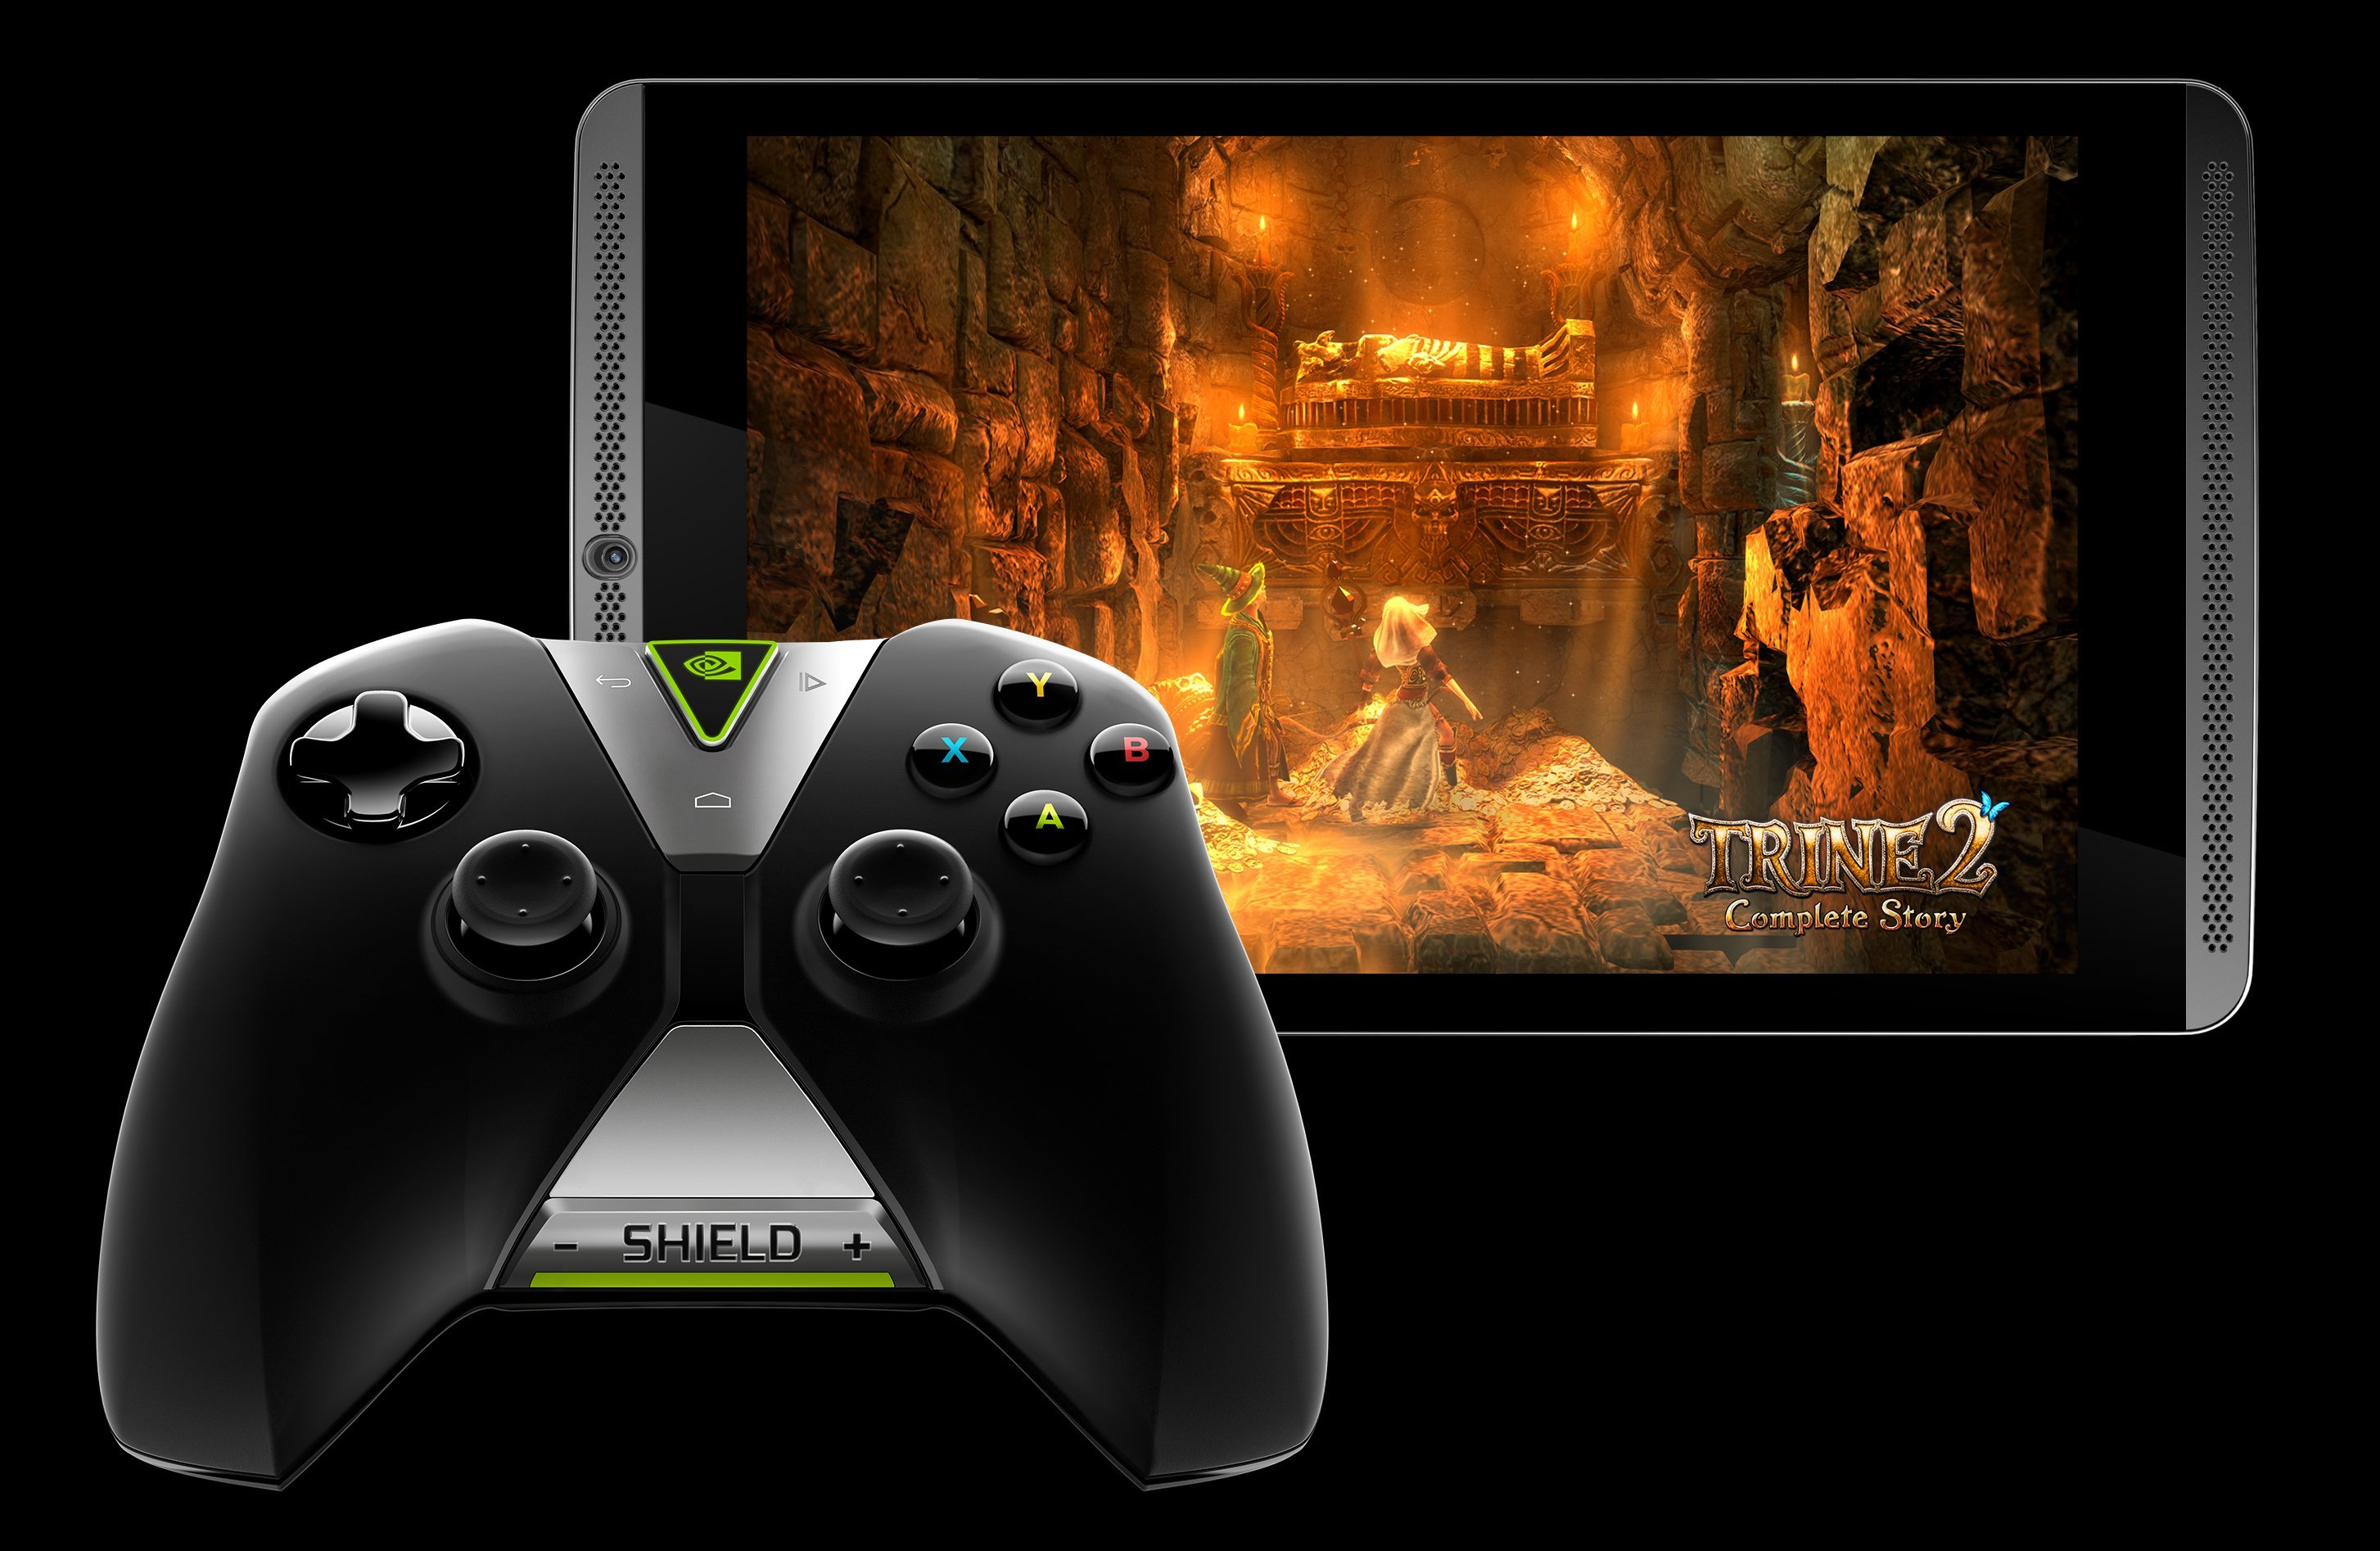 La Nvidia Shield Tablet recevra Lollipop avant la fin du mois